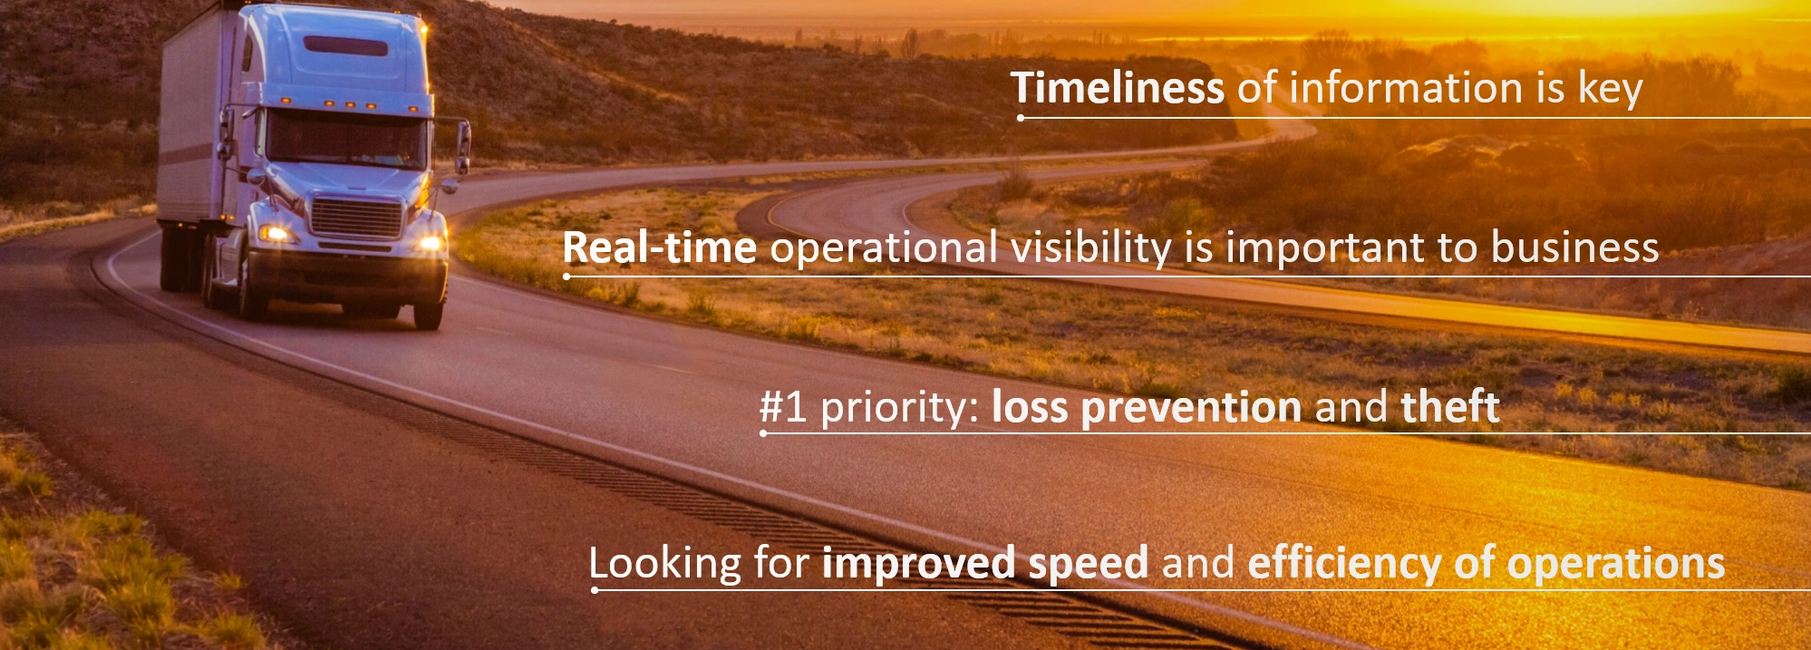 Timeliness of information Realtime visibility #1 priority theft improved speed efficiency operations